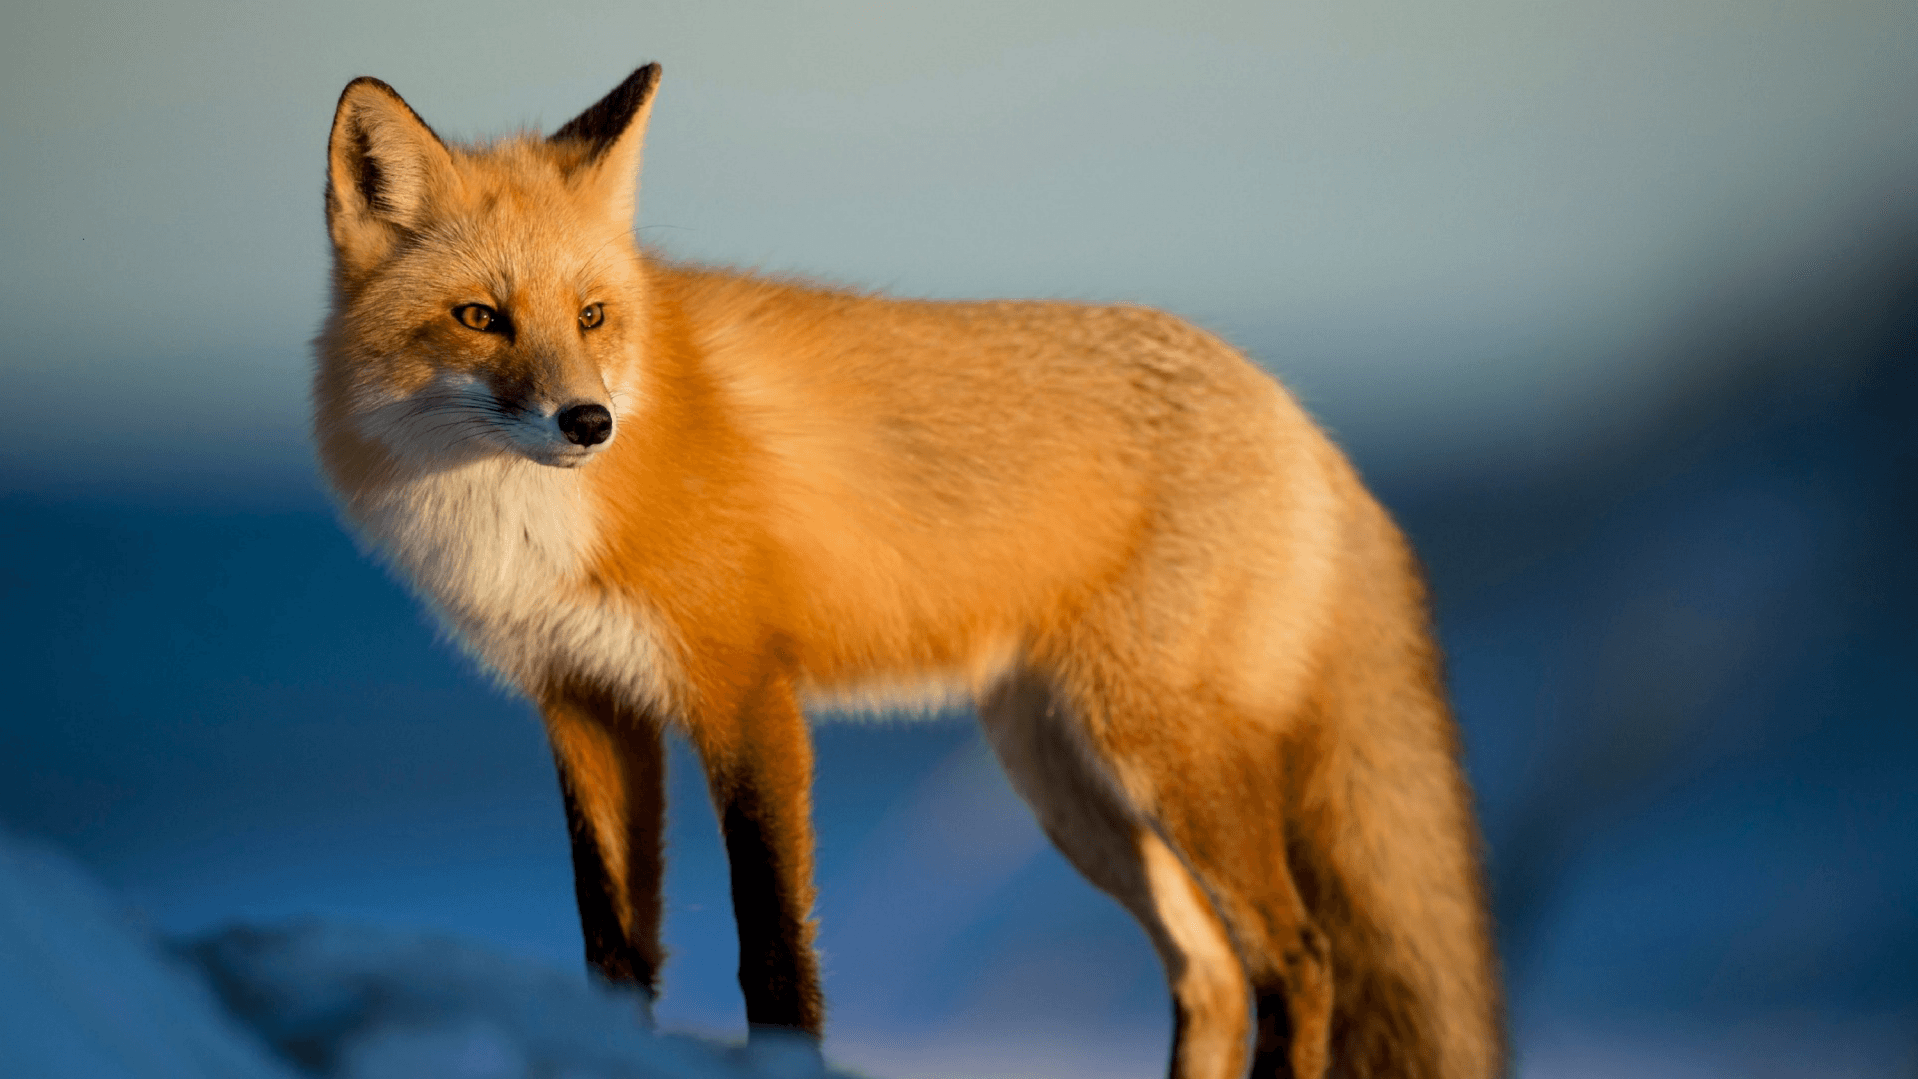 Micro Evolution of the Fox (Vulpes)